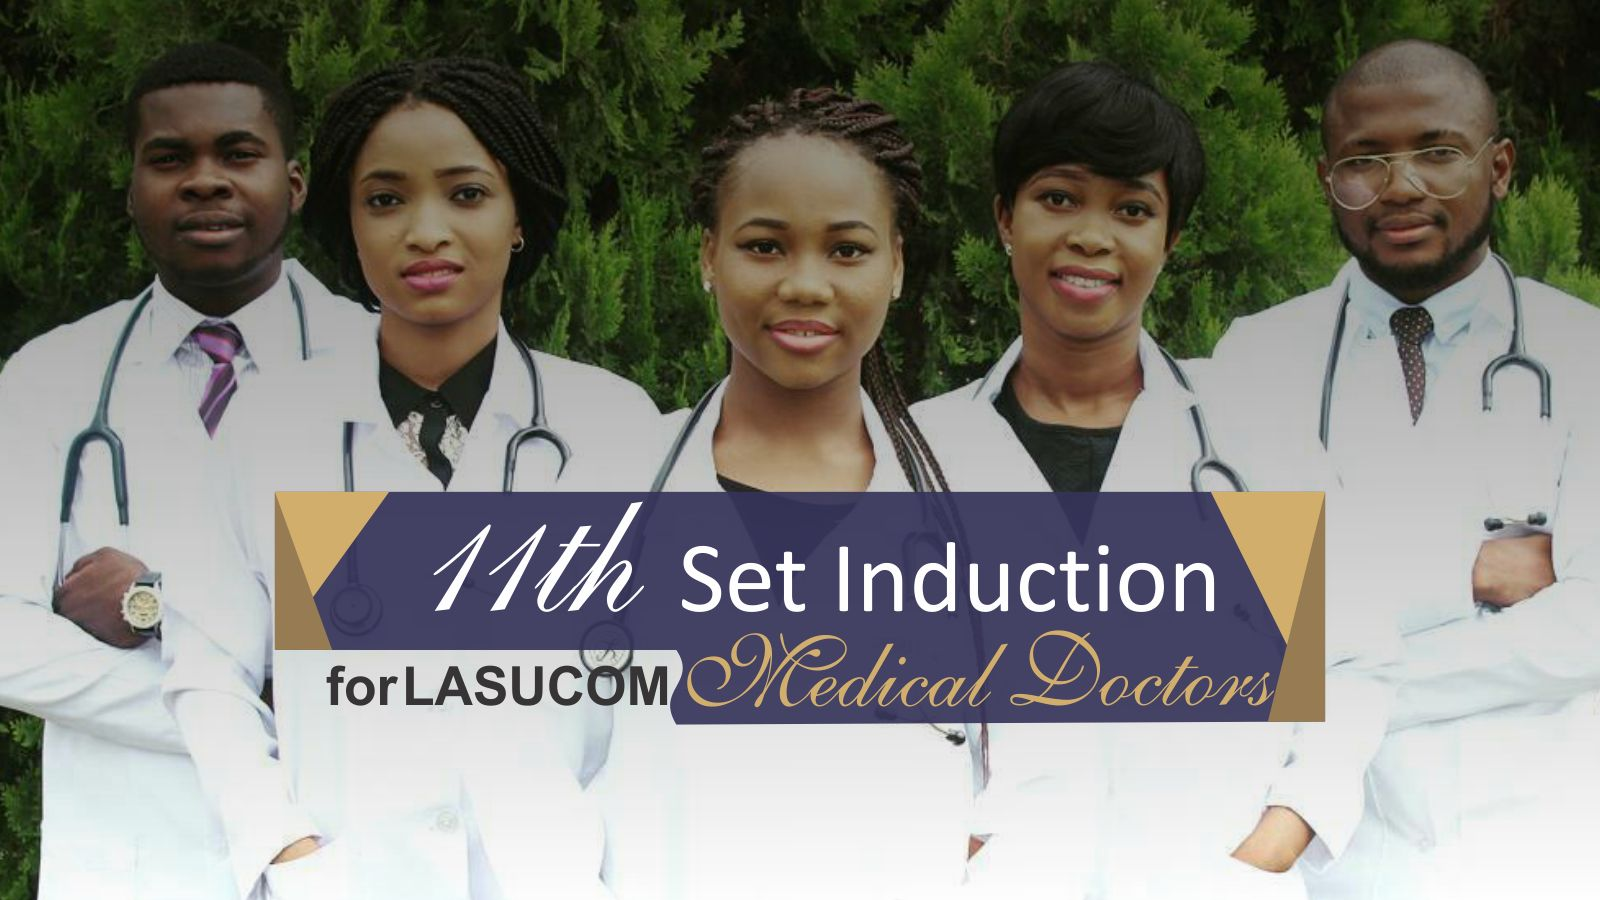 Induction for 11th Set of Doctors